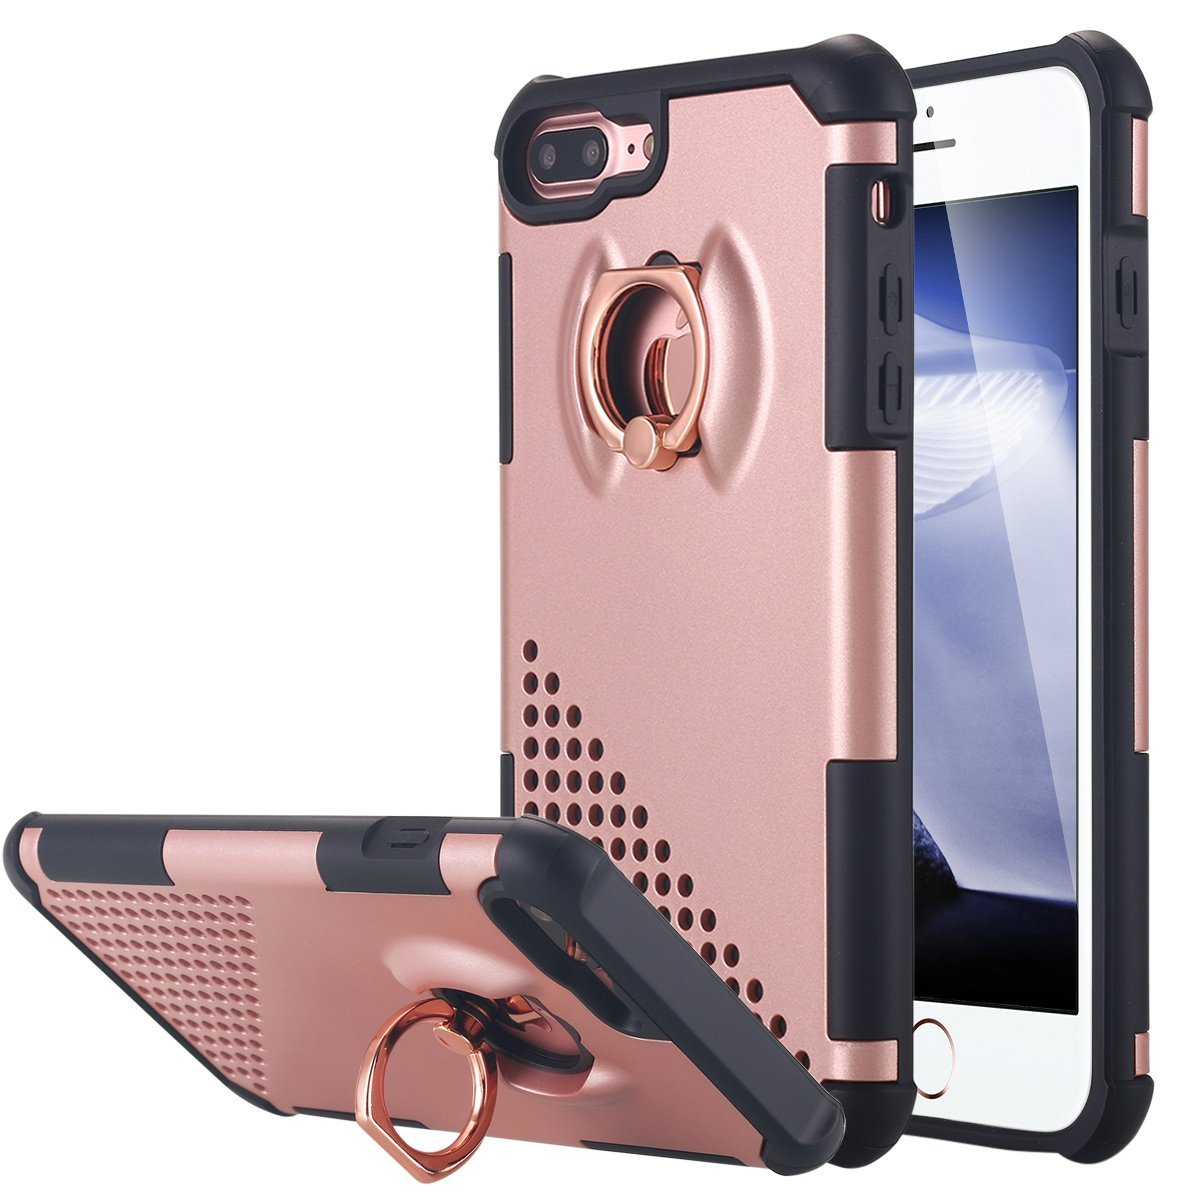 iPhone 7 Plus Case, LONTECT Dual Layer Shockproof Impact Protection Case with 360 Degree Rotating Ring Grip Holder Kickstand for Apple iPhone 7 Plus - Rose Gold